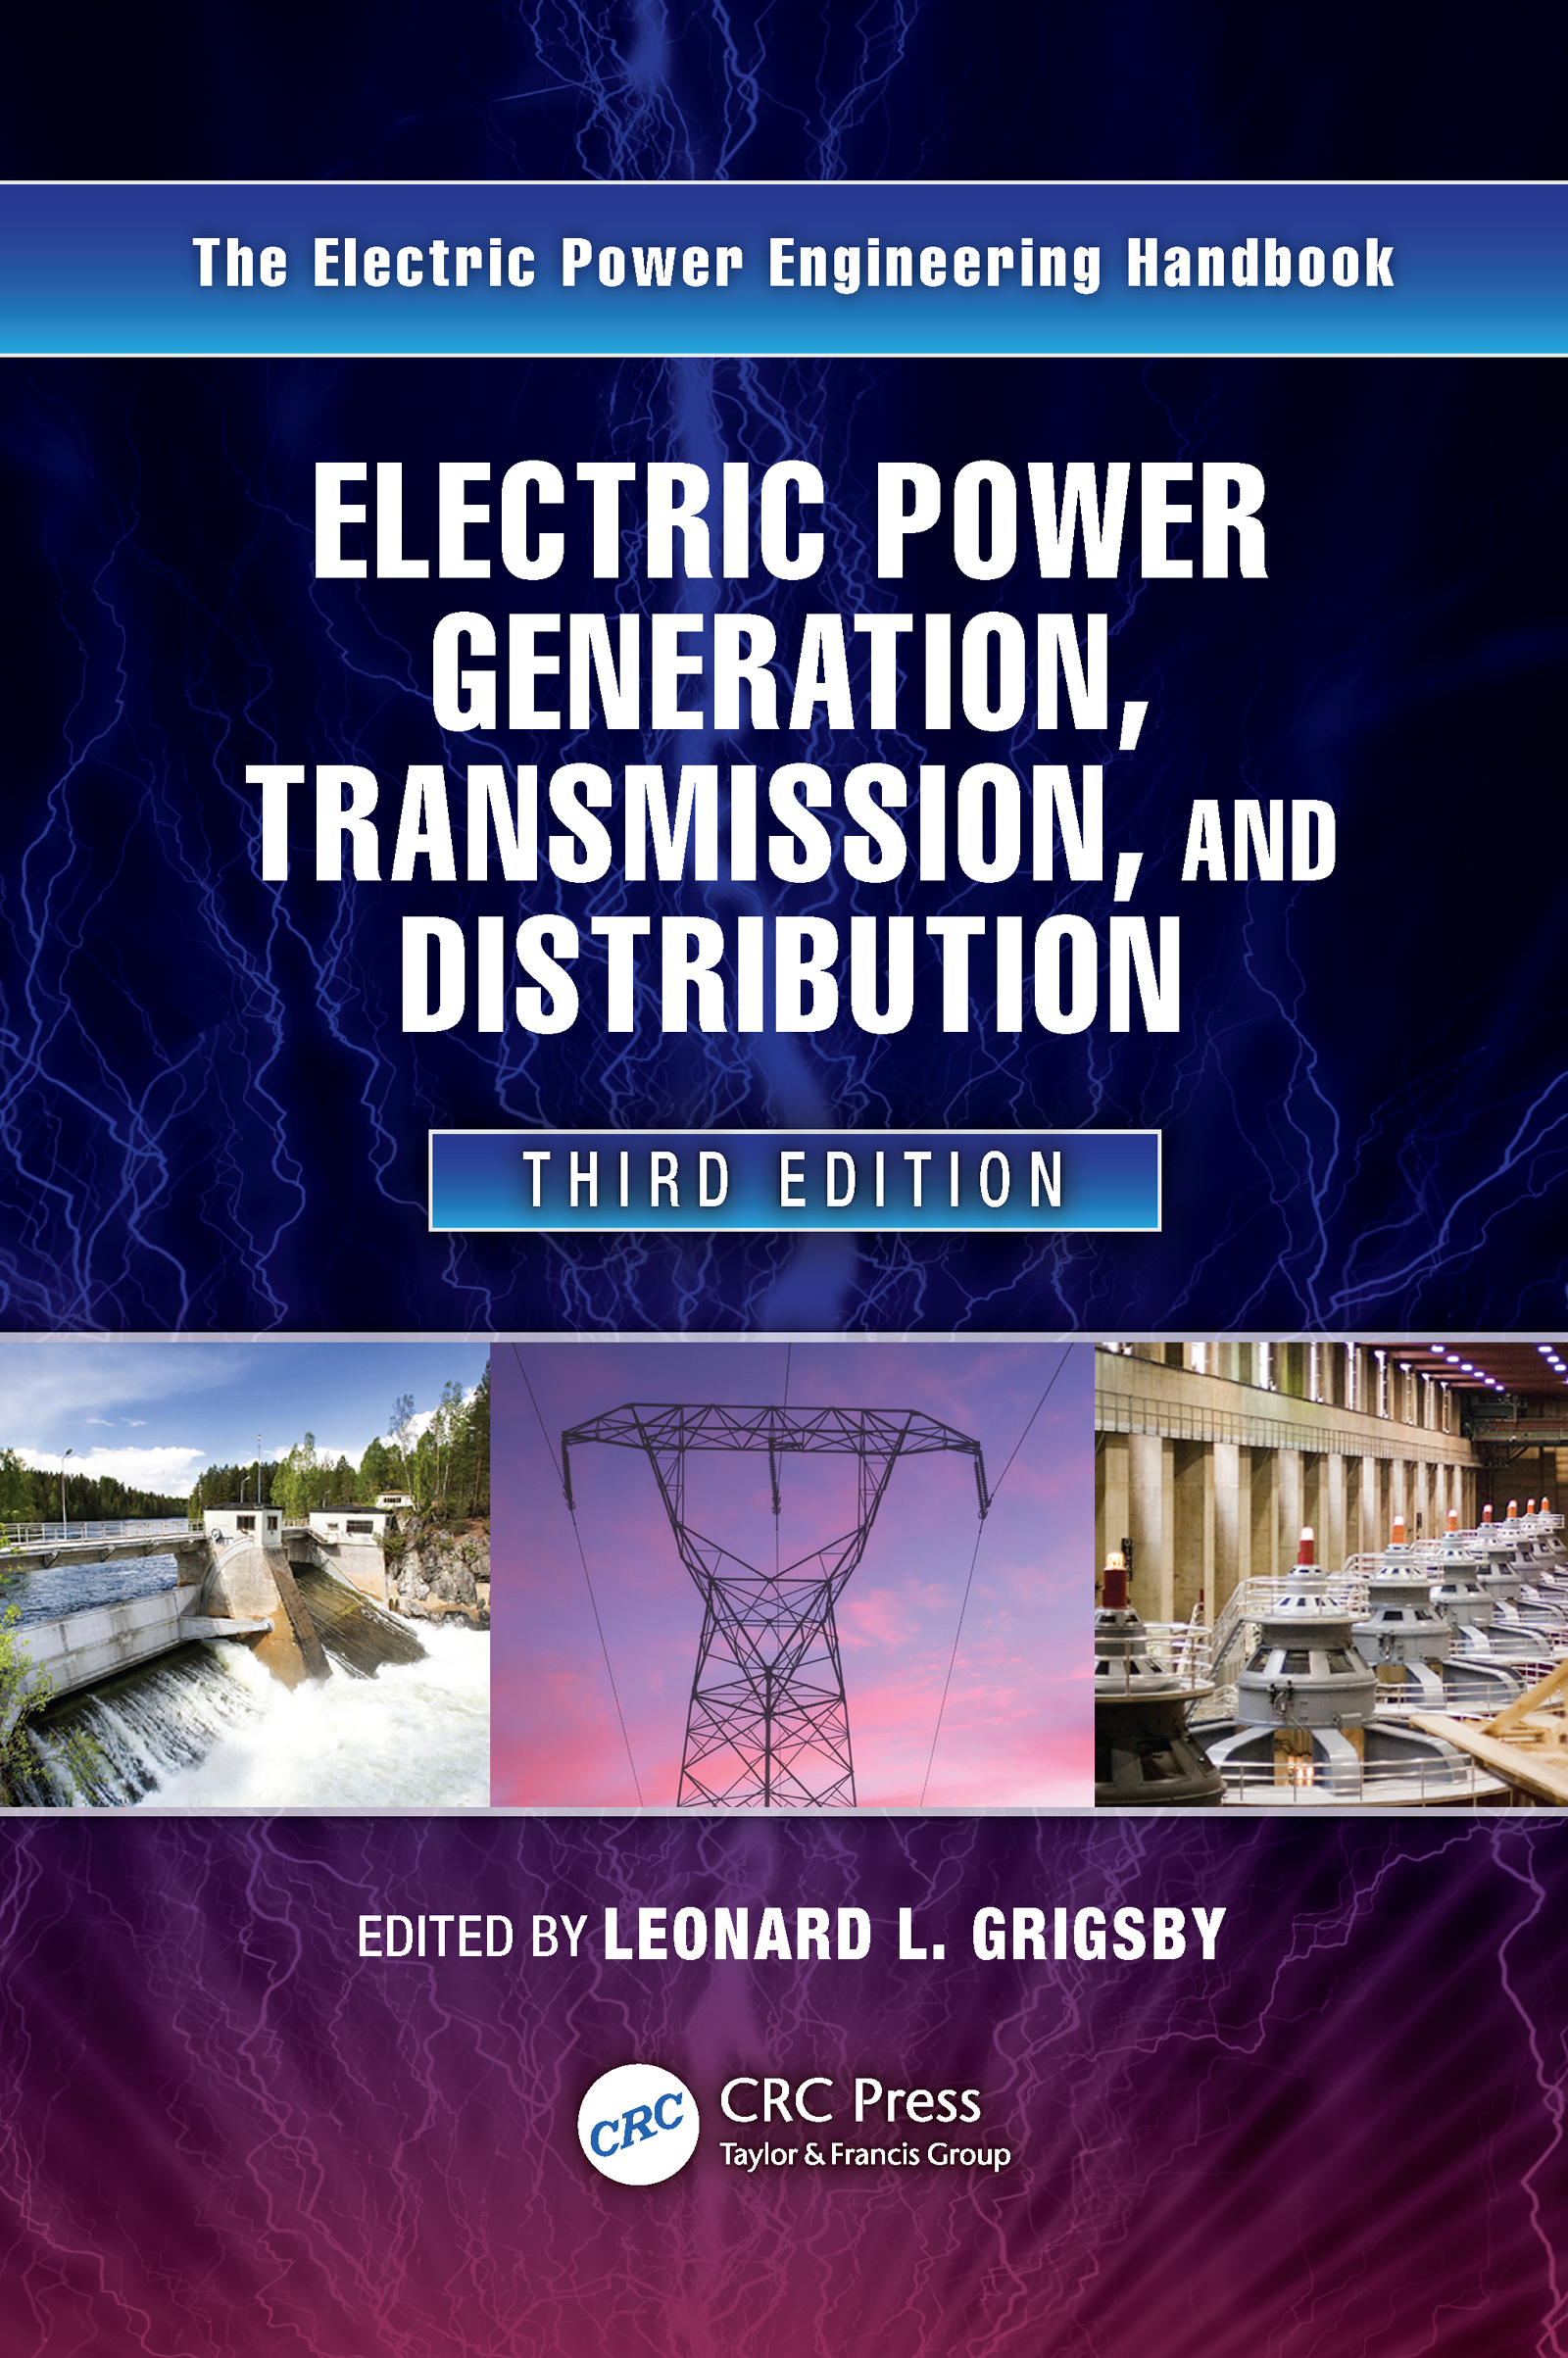 Electric Power Generation, Transmission, and Distribution: The Electric Power Engineering Handbook